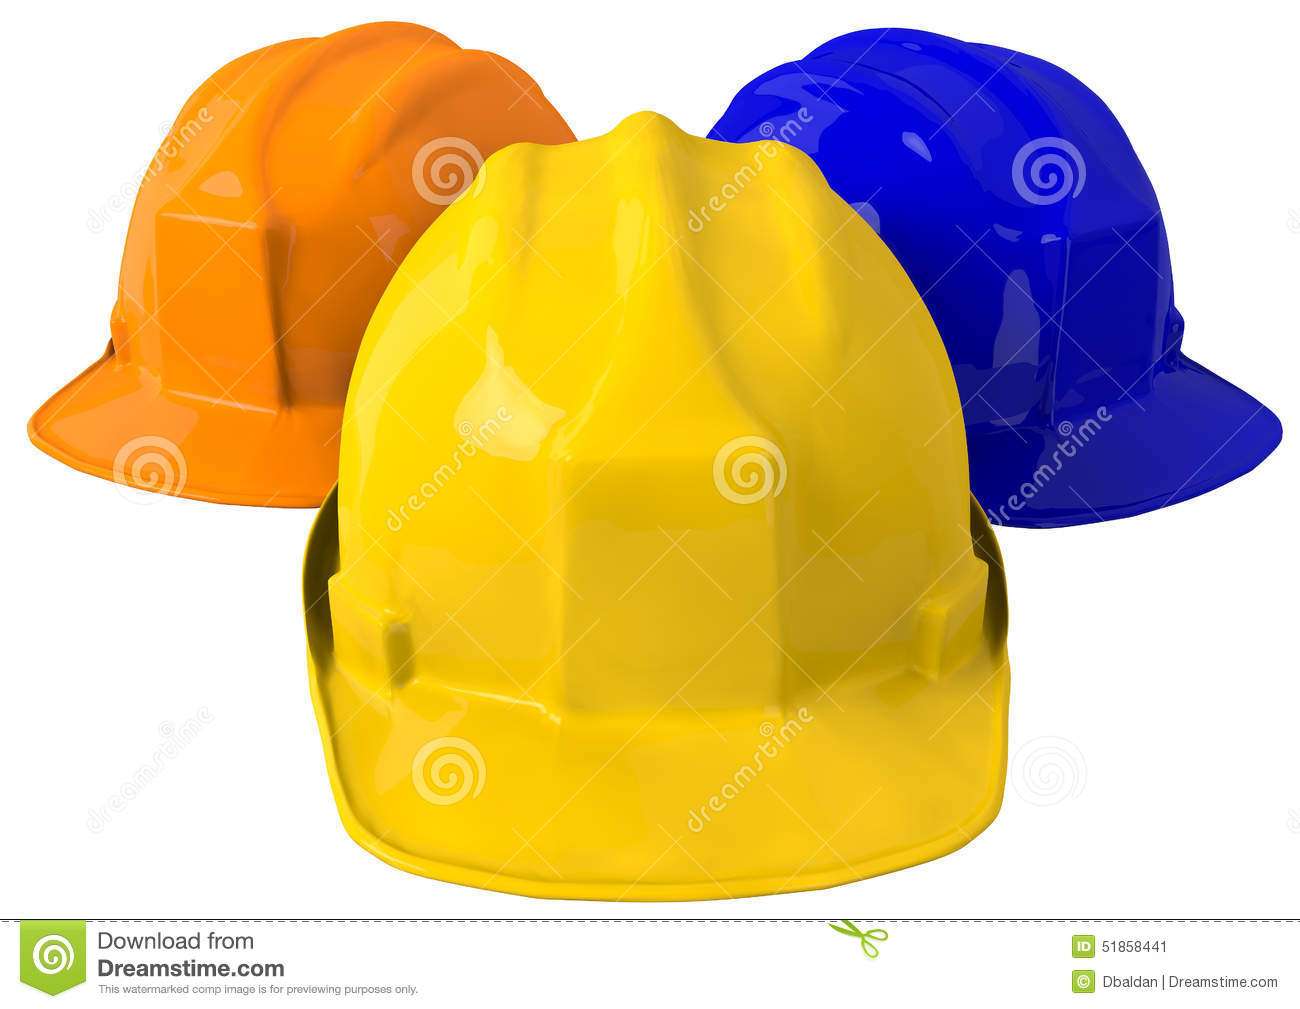 Yellow safety helmet or hard hat on white background. High definition a79a7f79f